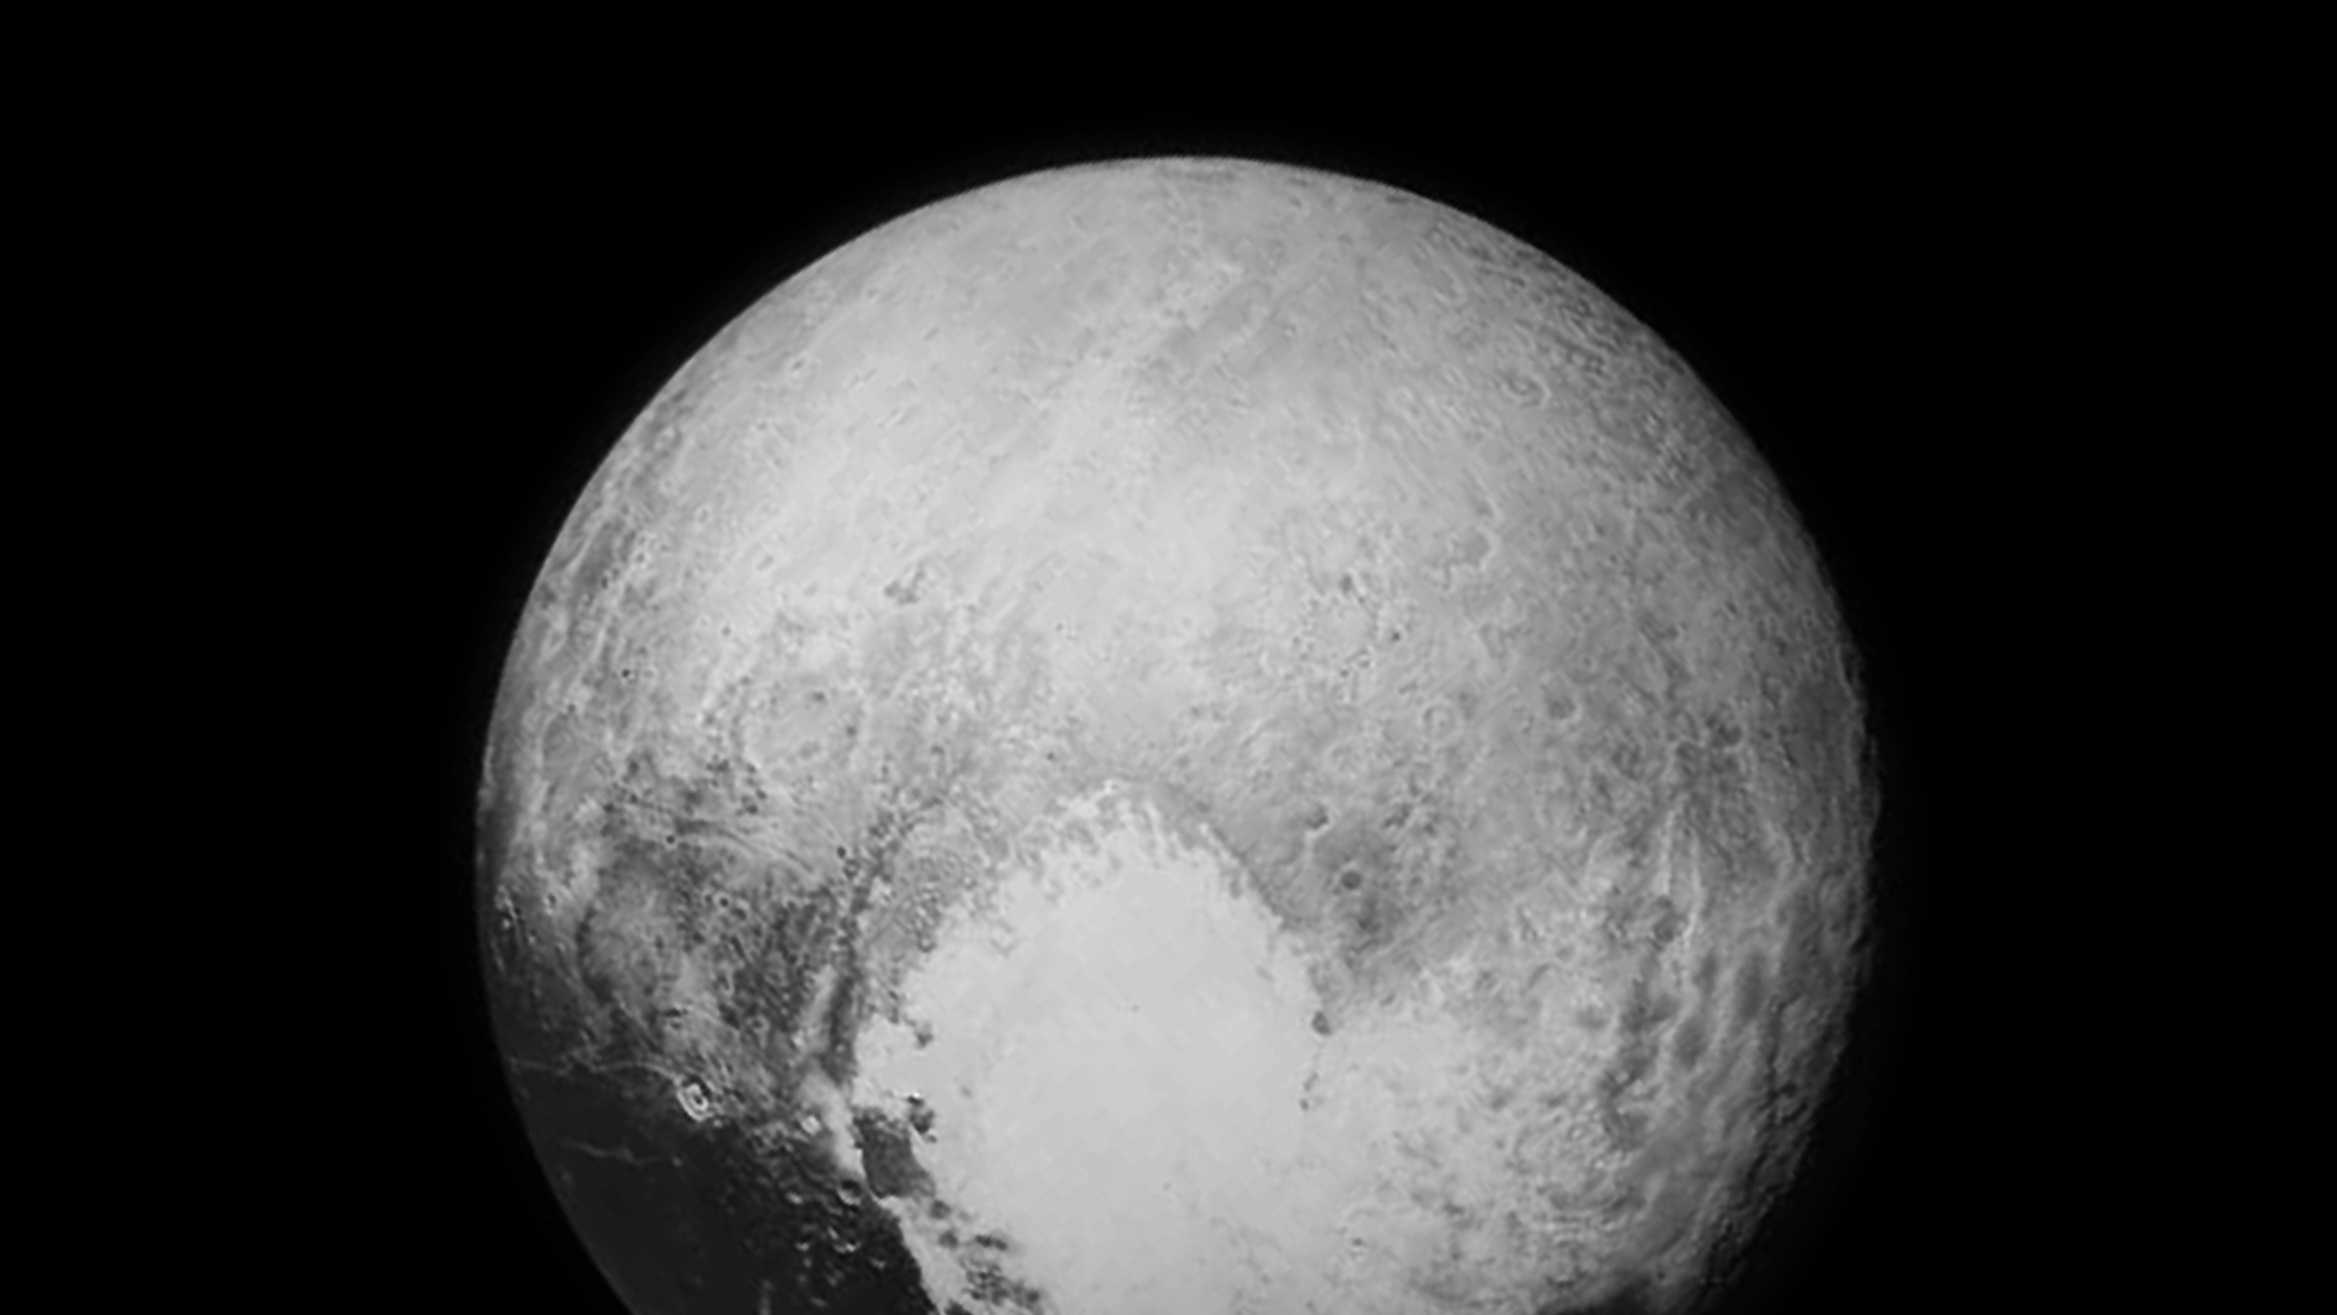 This is the most detailed image sent to Earth on July 13 before the spacecraft's closest approach to Pluto on July 14.